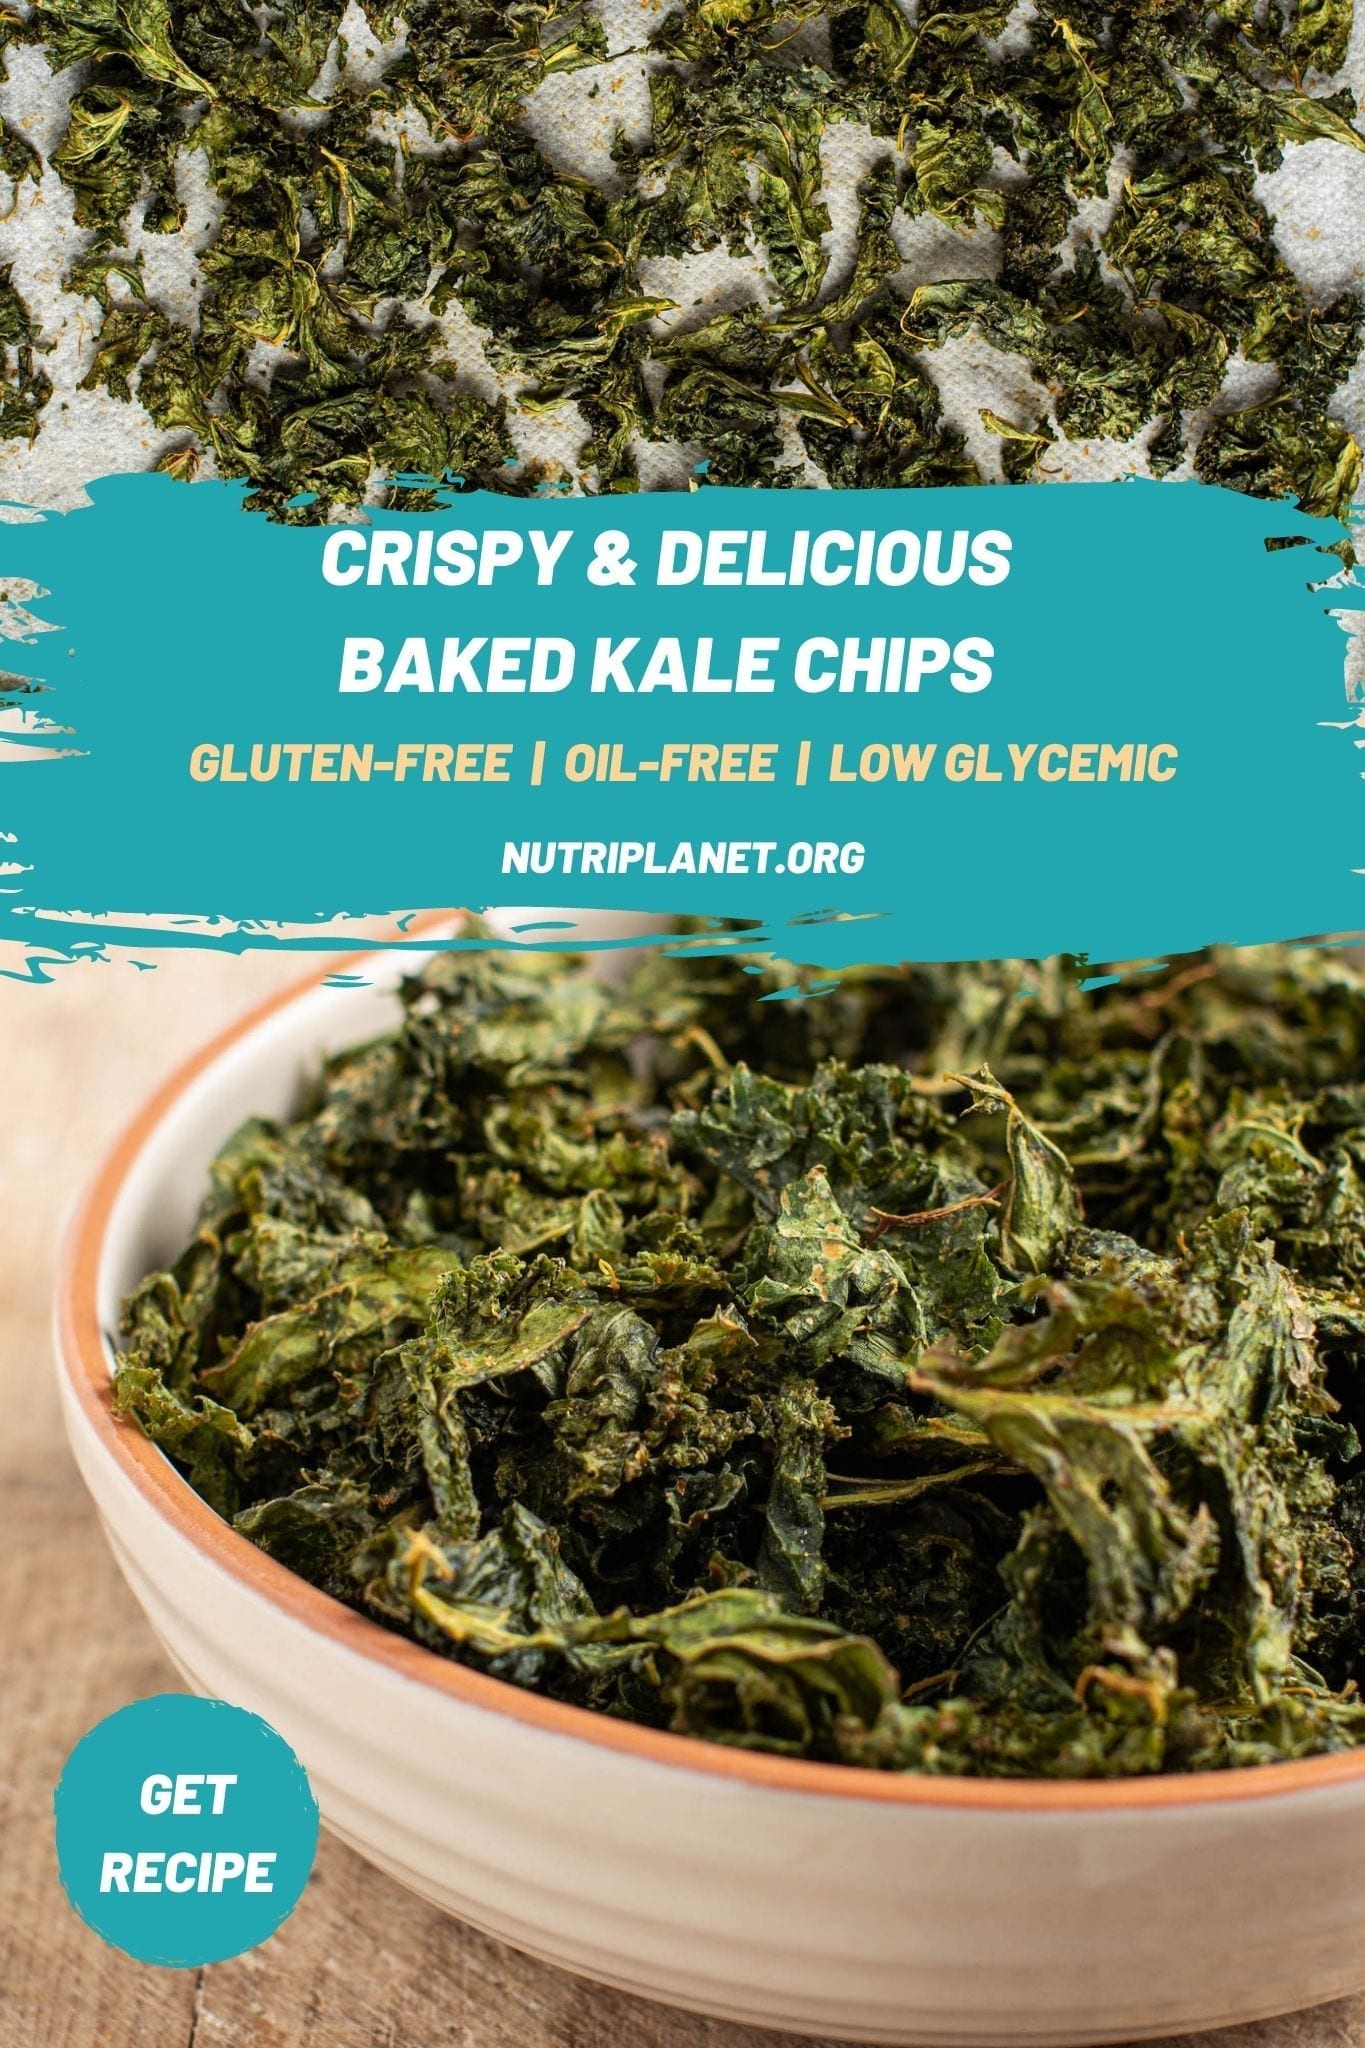 Try those delicious baked kale chips that are also oil-free. It's a great recipe for a healthy snack instead of potato chips for when you crave something crispy and a bit salty.